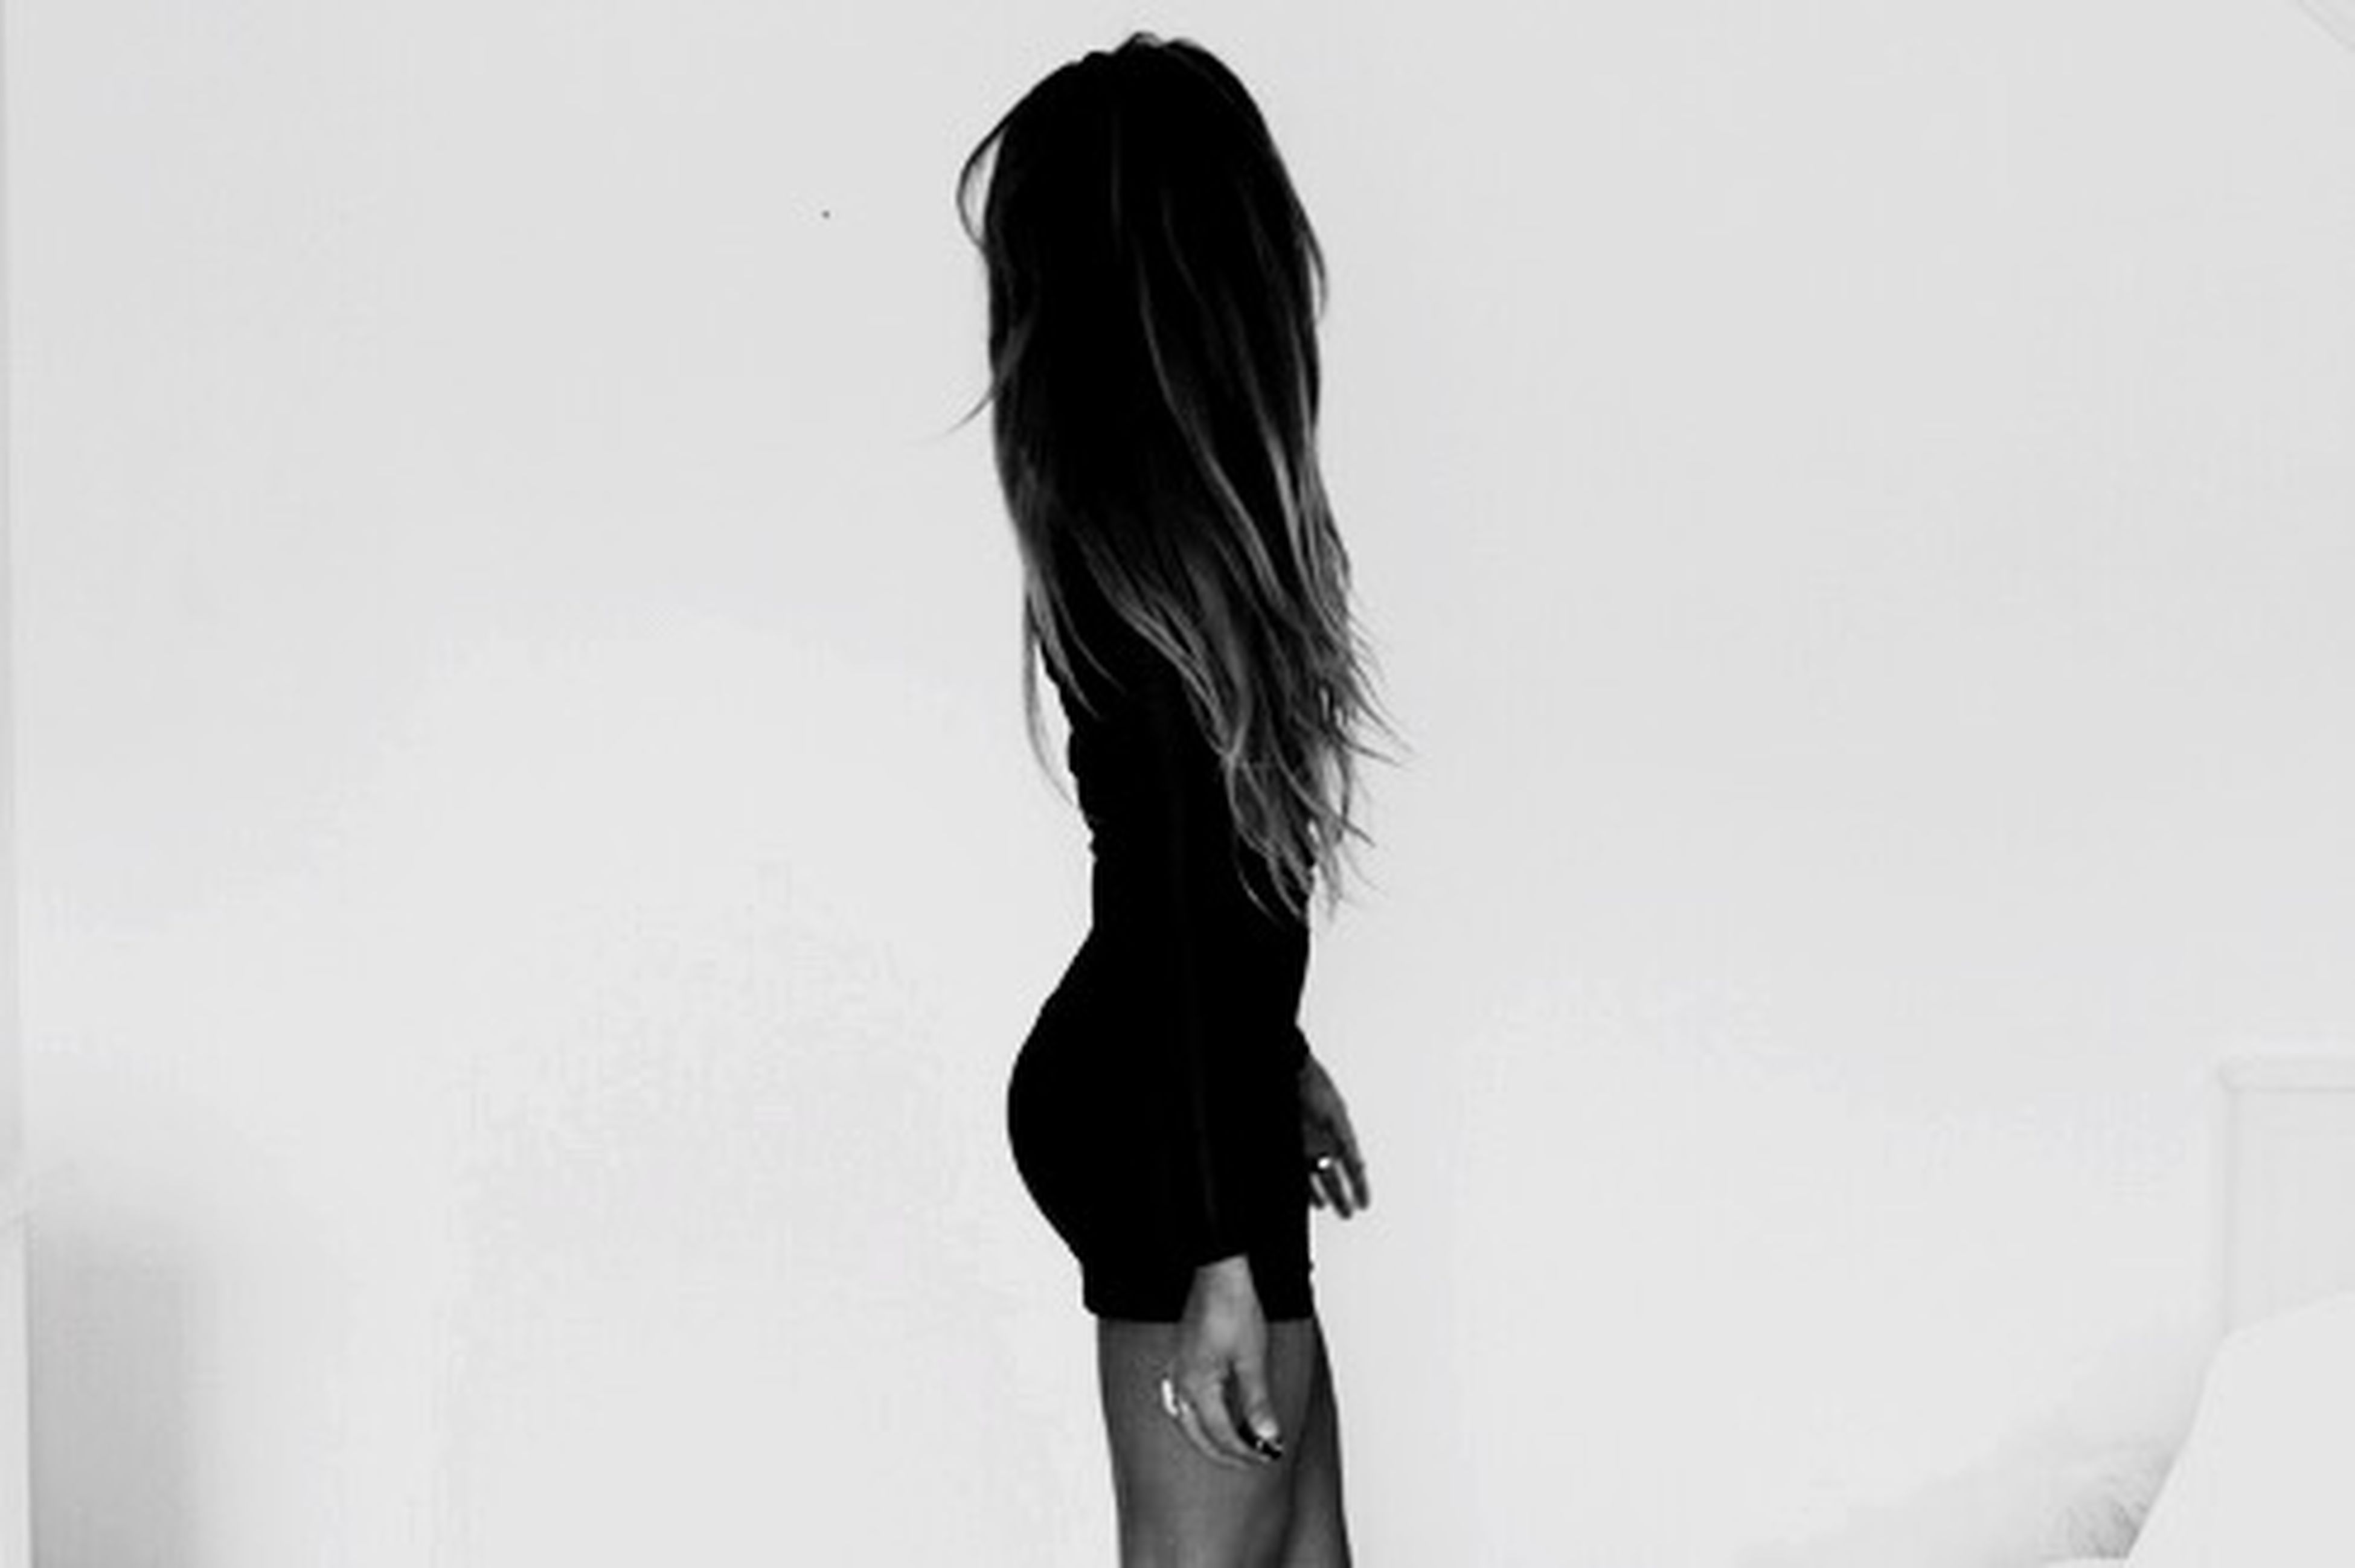 long hair, standing, lifestyles, young women, white background, studio shot, young adult, copy space, person, waist up, rear view, three quarter length, leisure activity, casual clothing, obscured face, femininity, wall - building feature